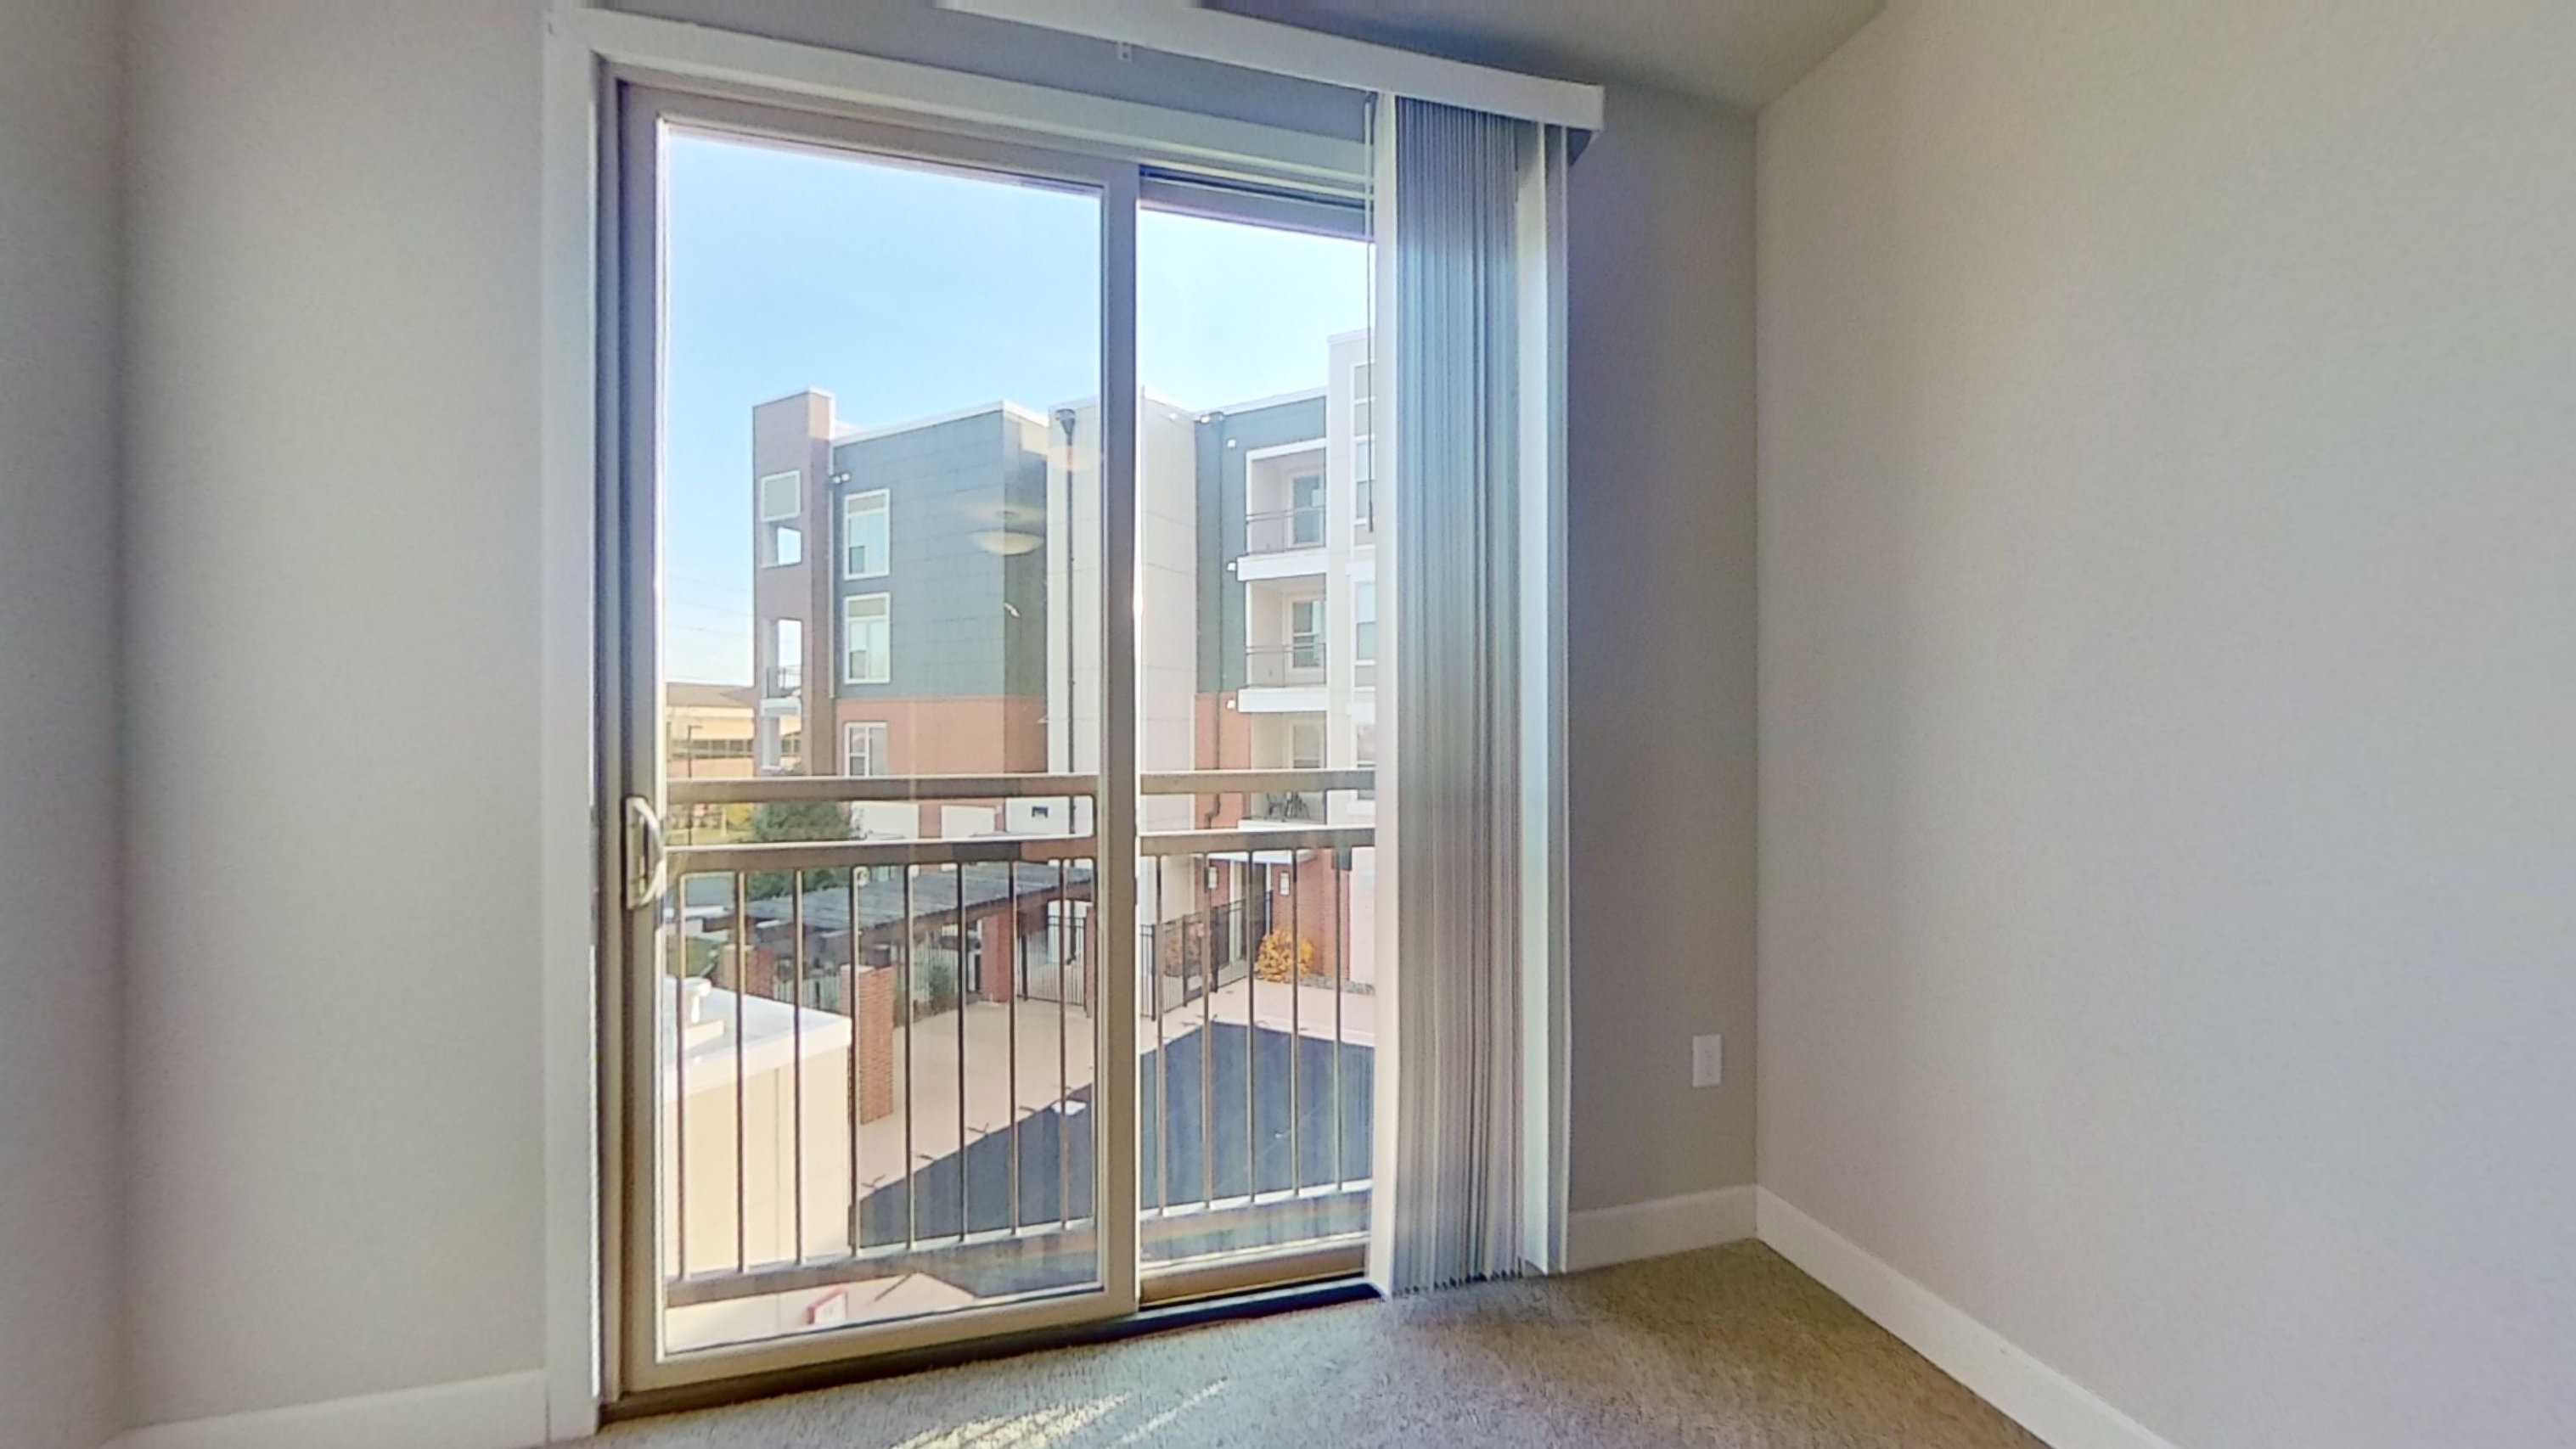 A2 Unit Balcony Access at the Vue at Creve Coeur Apartments in Creve Coeur, MO